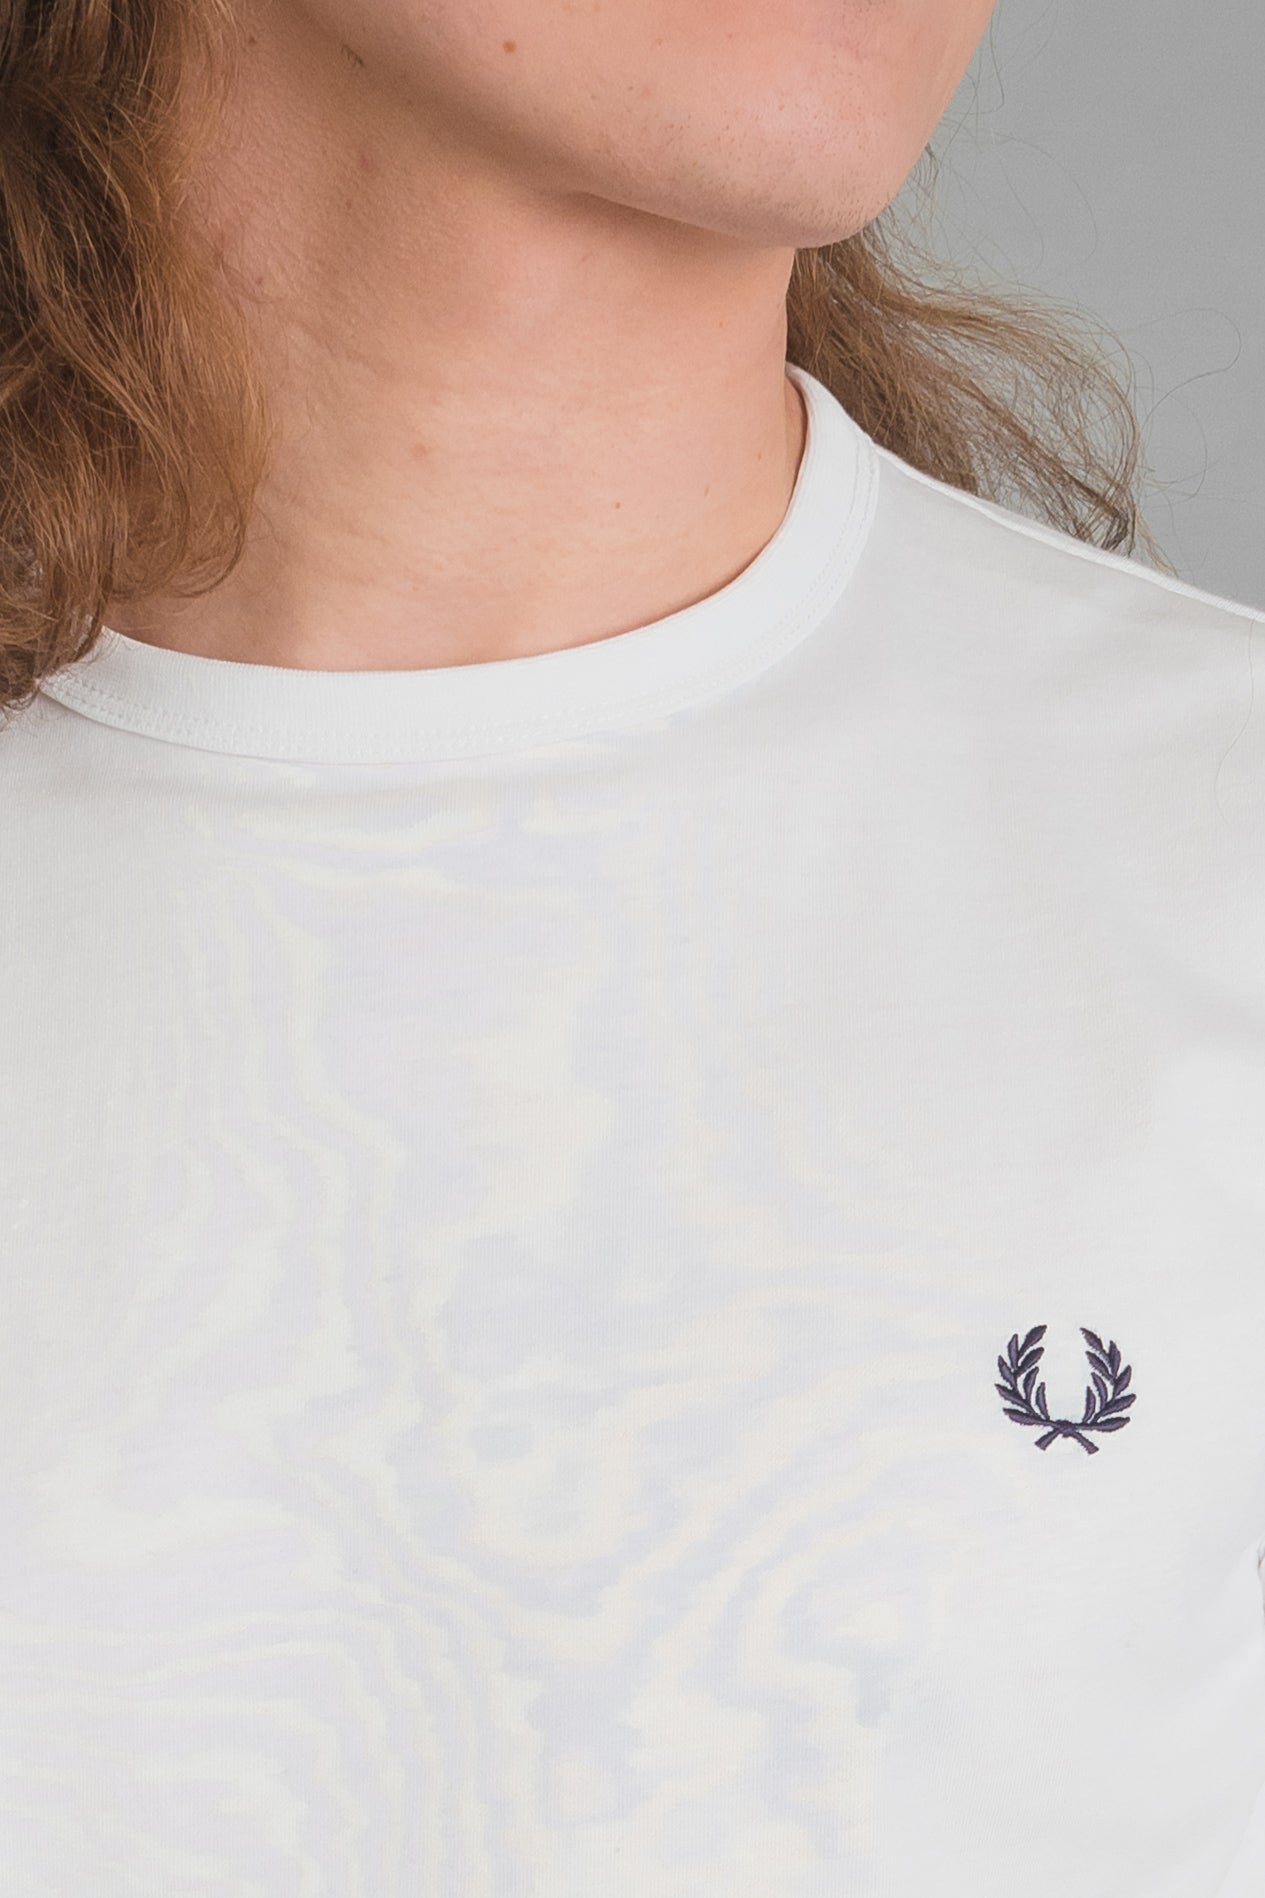 "Fred Perry Ringer miesten t-paita I INCH"" Tampere"